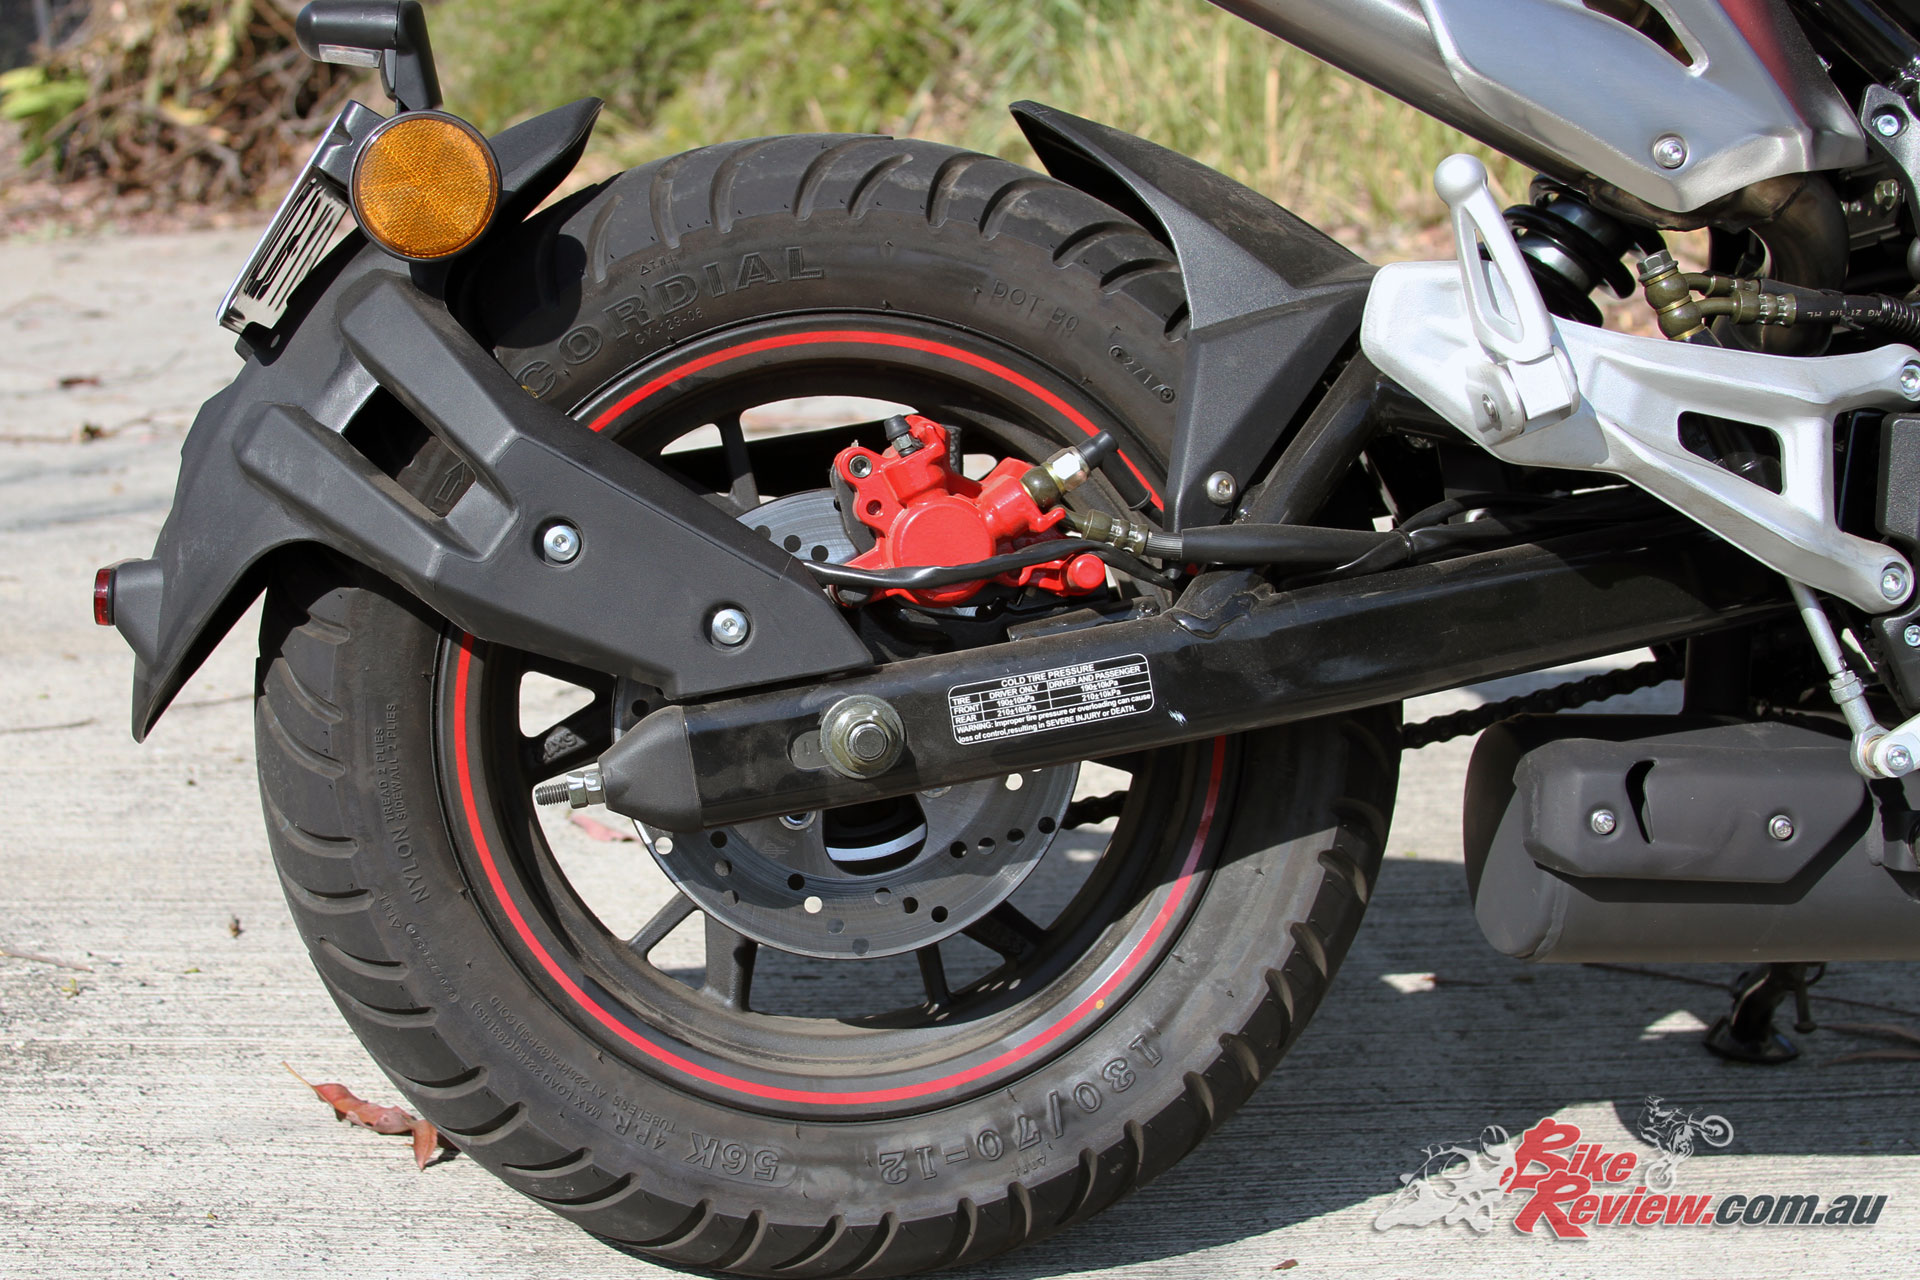 I'd convert the rear brakes to a traditional system. The swingarm mounted fender is also a cool touch, keeping the tail clean.